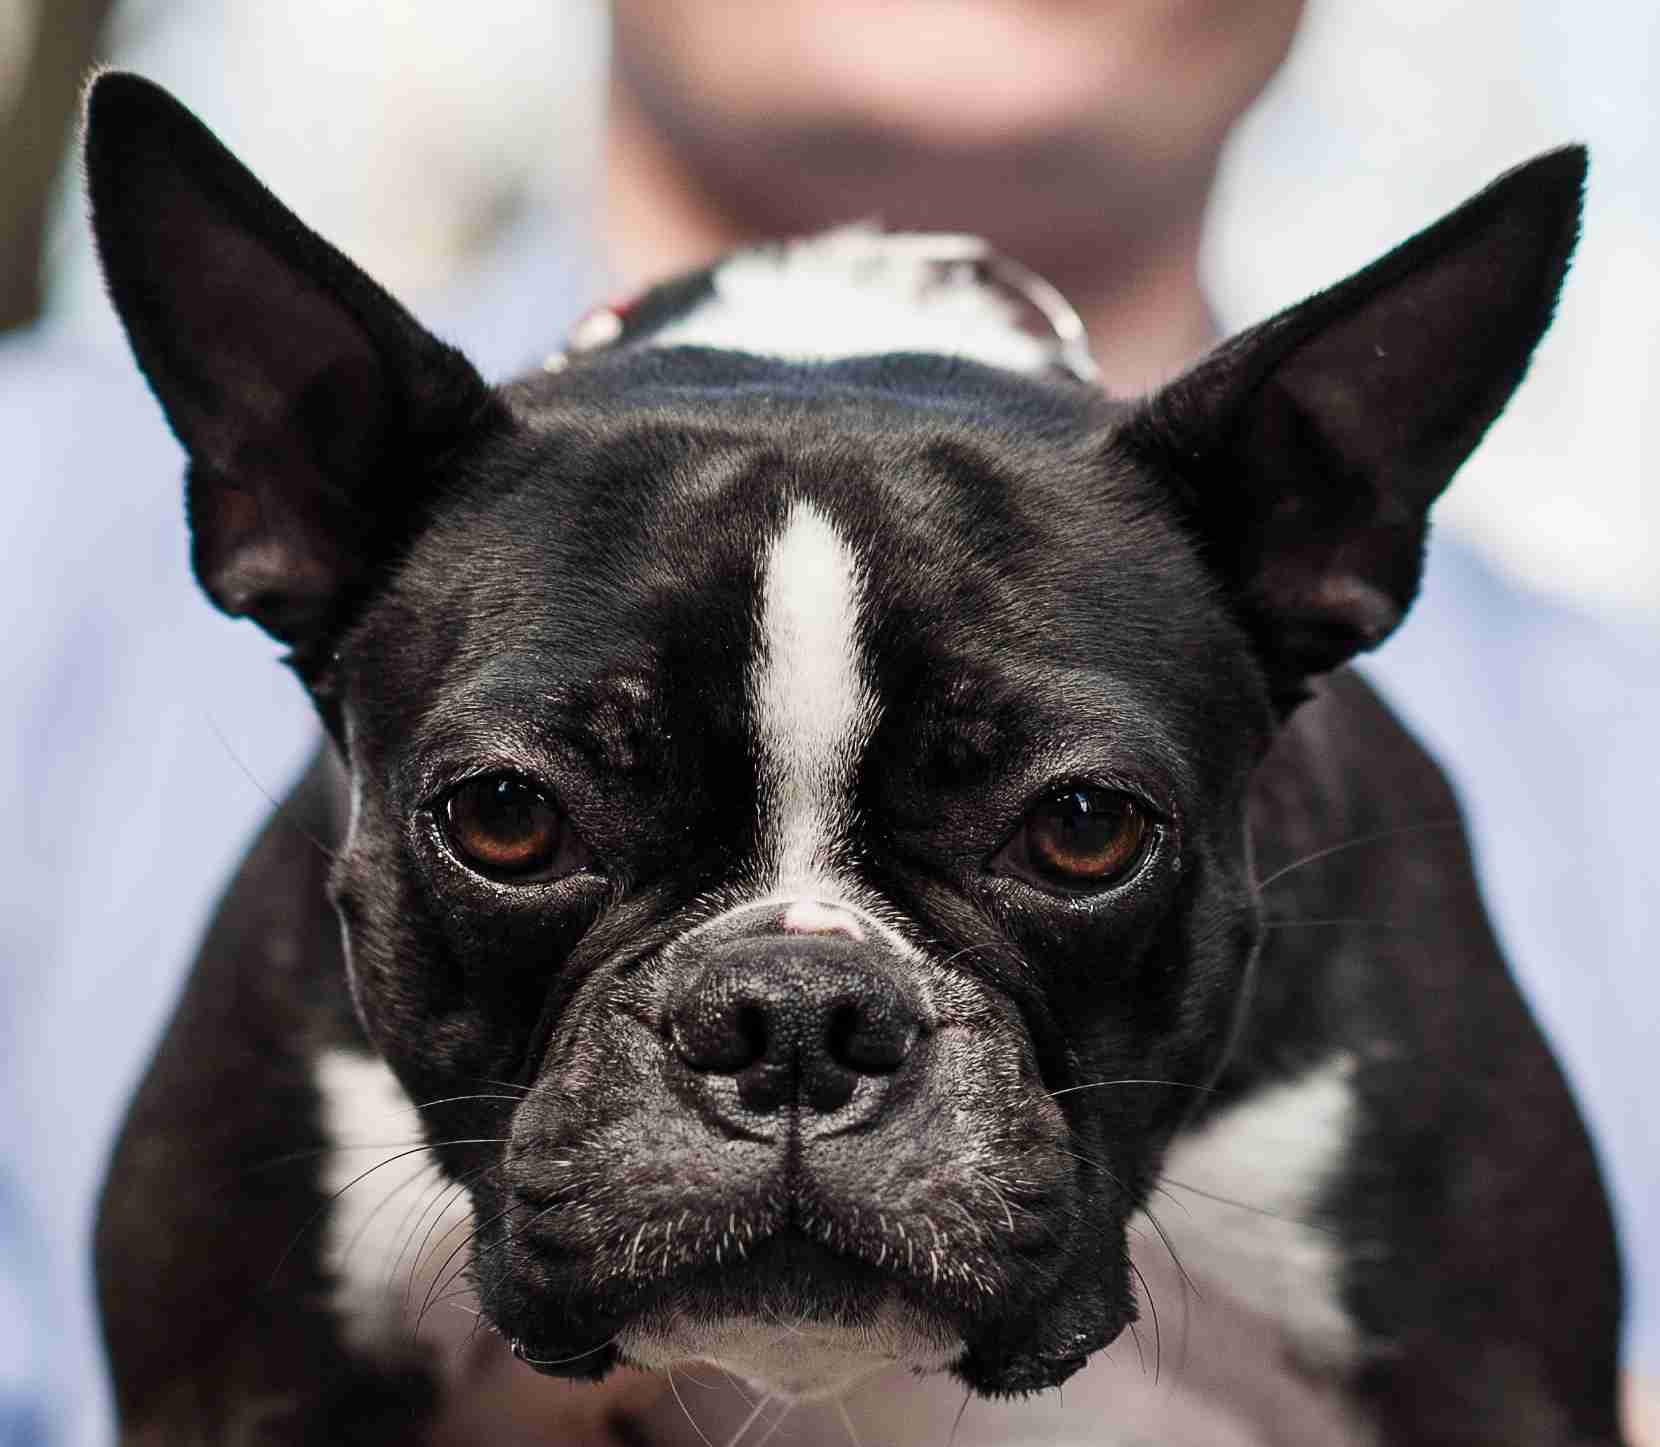 Mia, a Boston Terrier